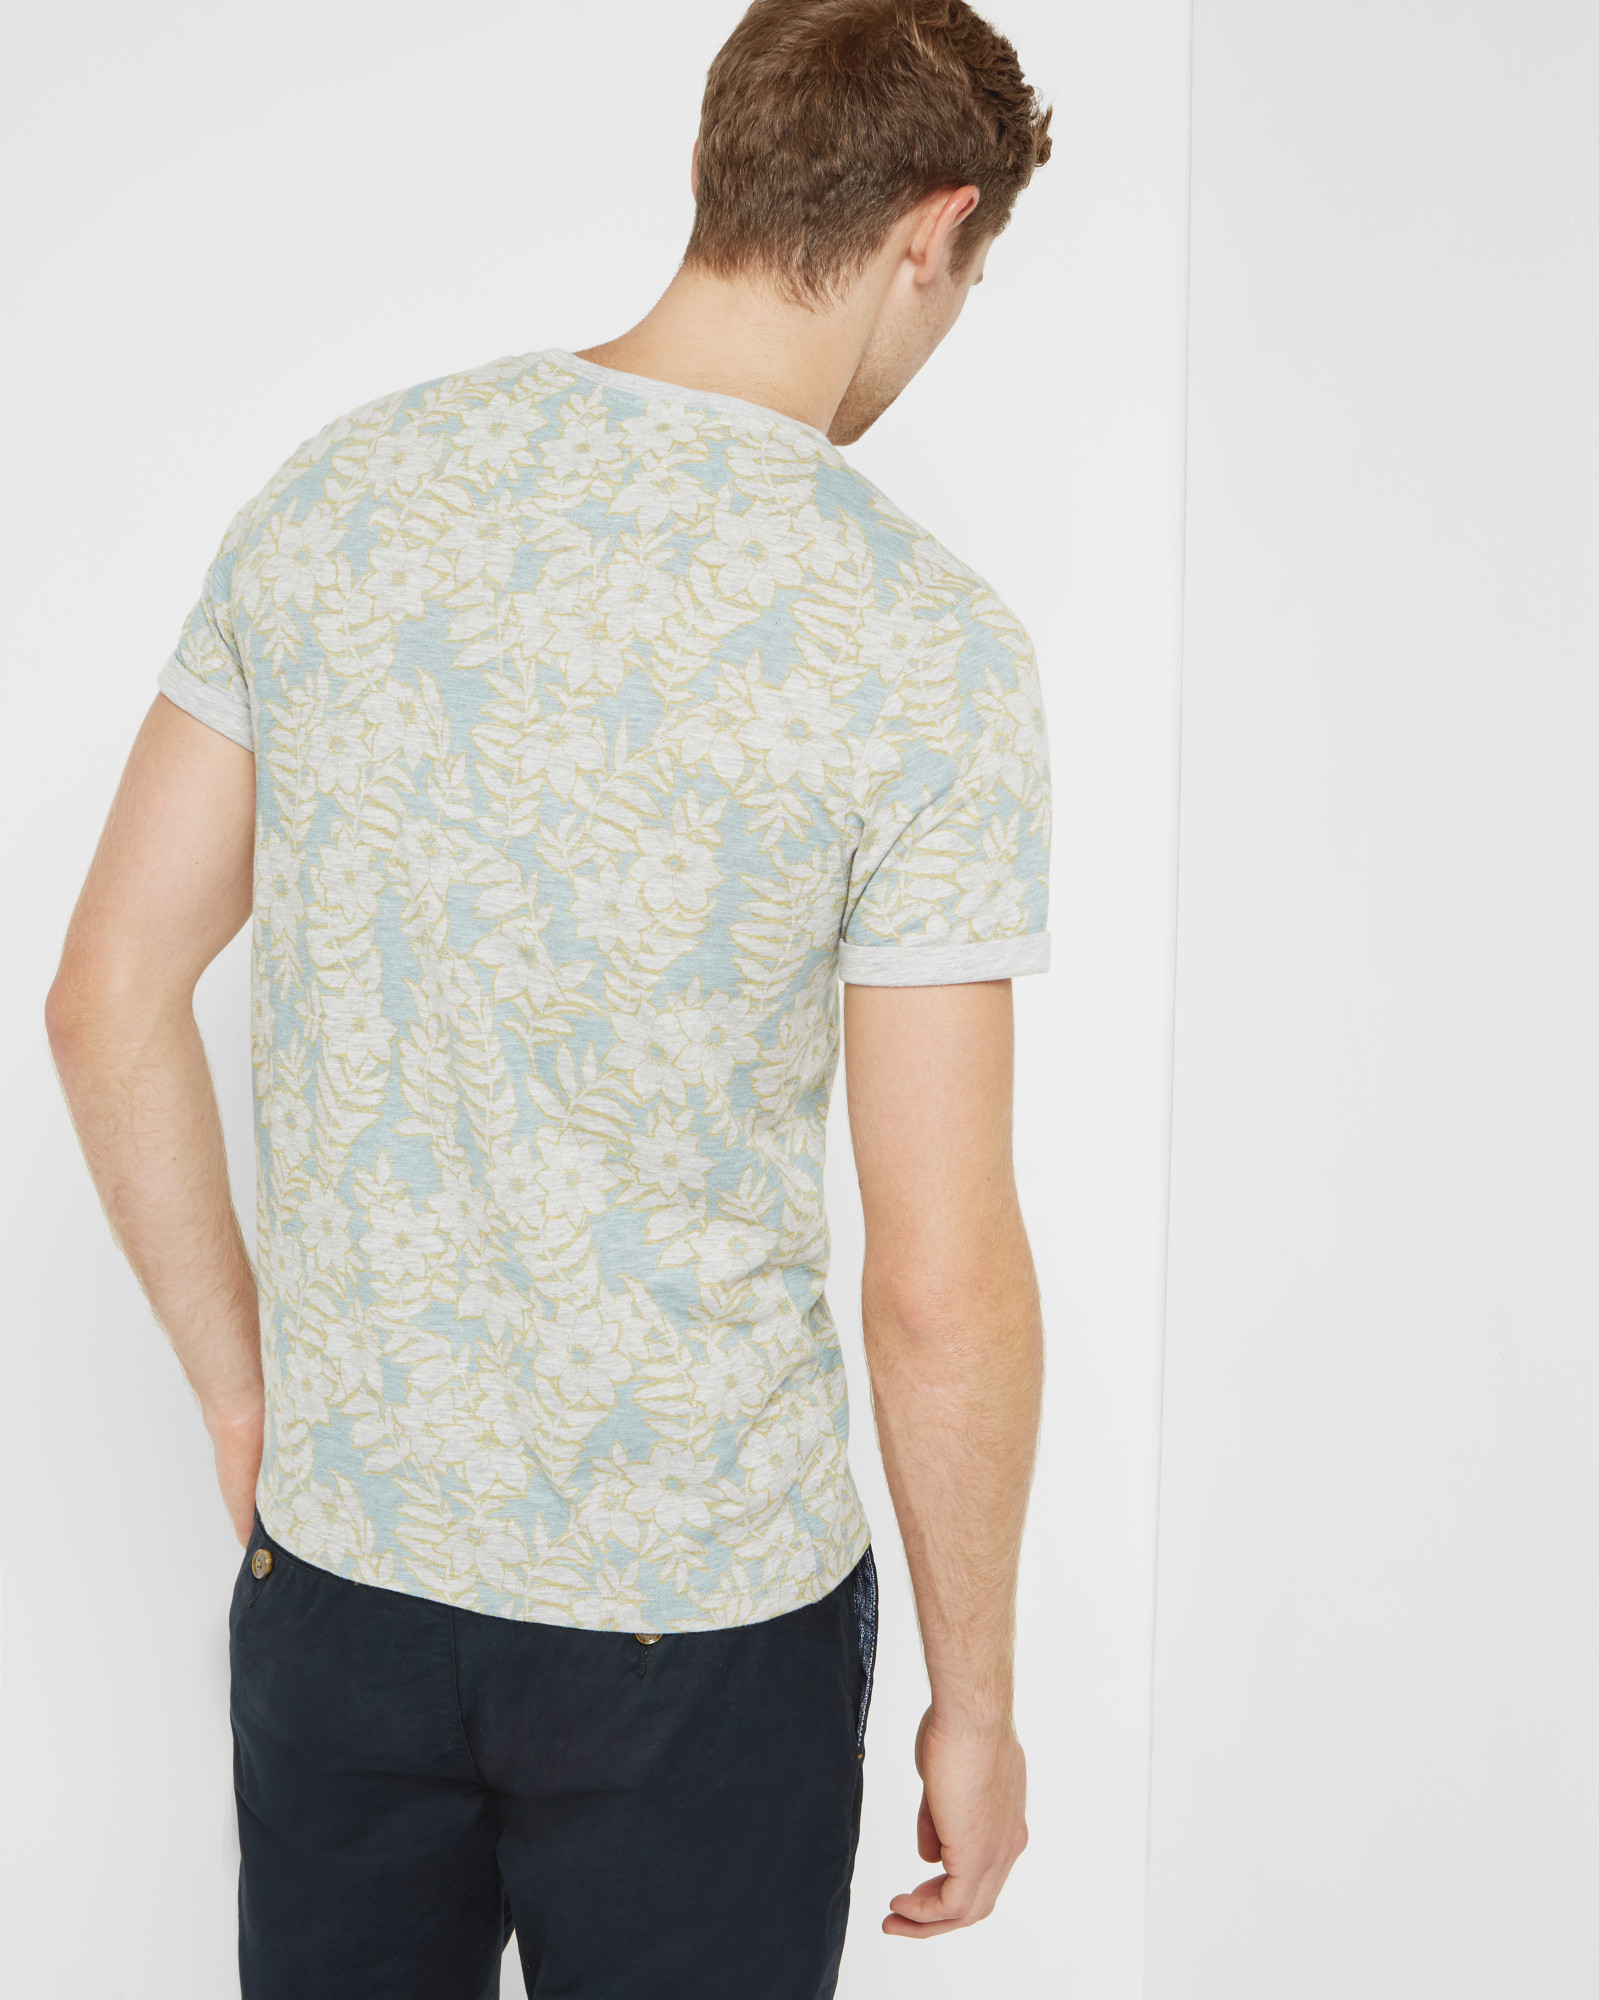 Ted baker floral cotton t shirt in green for men lyst for Ted baker floral print shirt